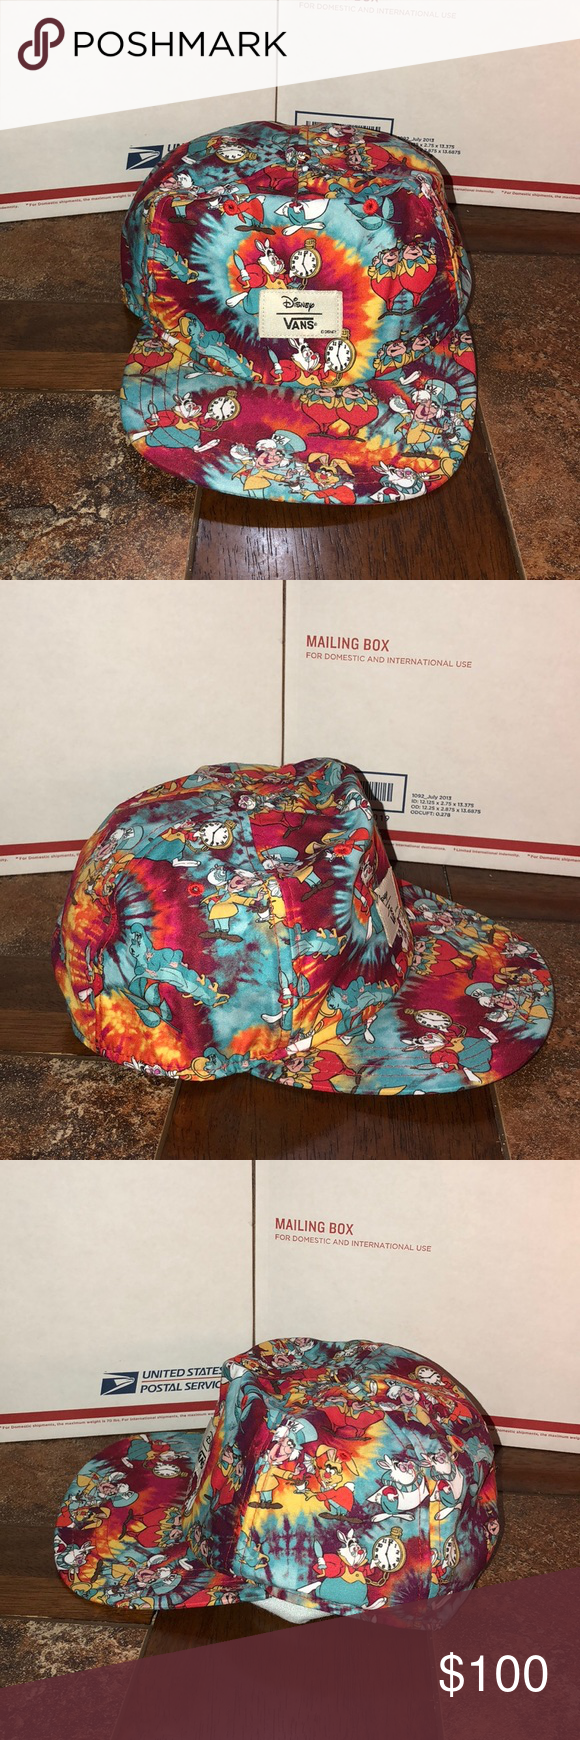 cdd9085ddb6 Vans Alice in Wonderland Disney SnapBack Vans Alice In Wonderland Disney  SnapBack One Size Brand New  Without Tags Willing To Accept Reasonable  Offers (138) ...